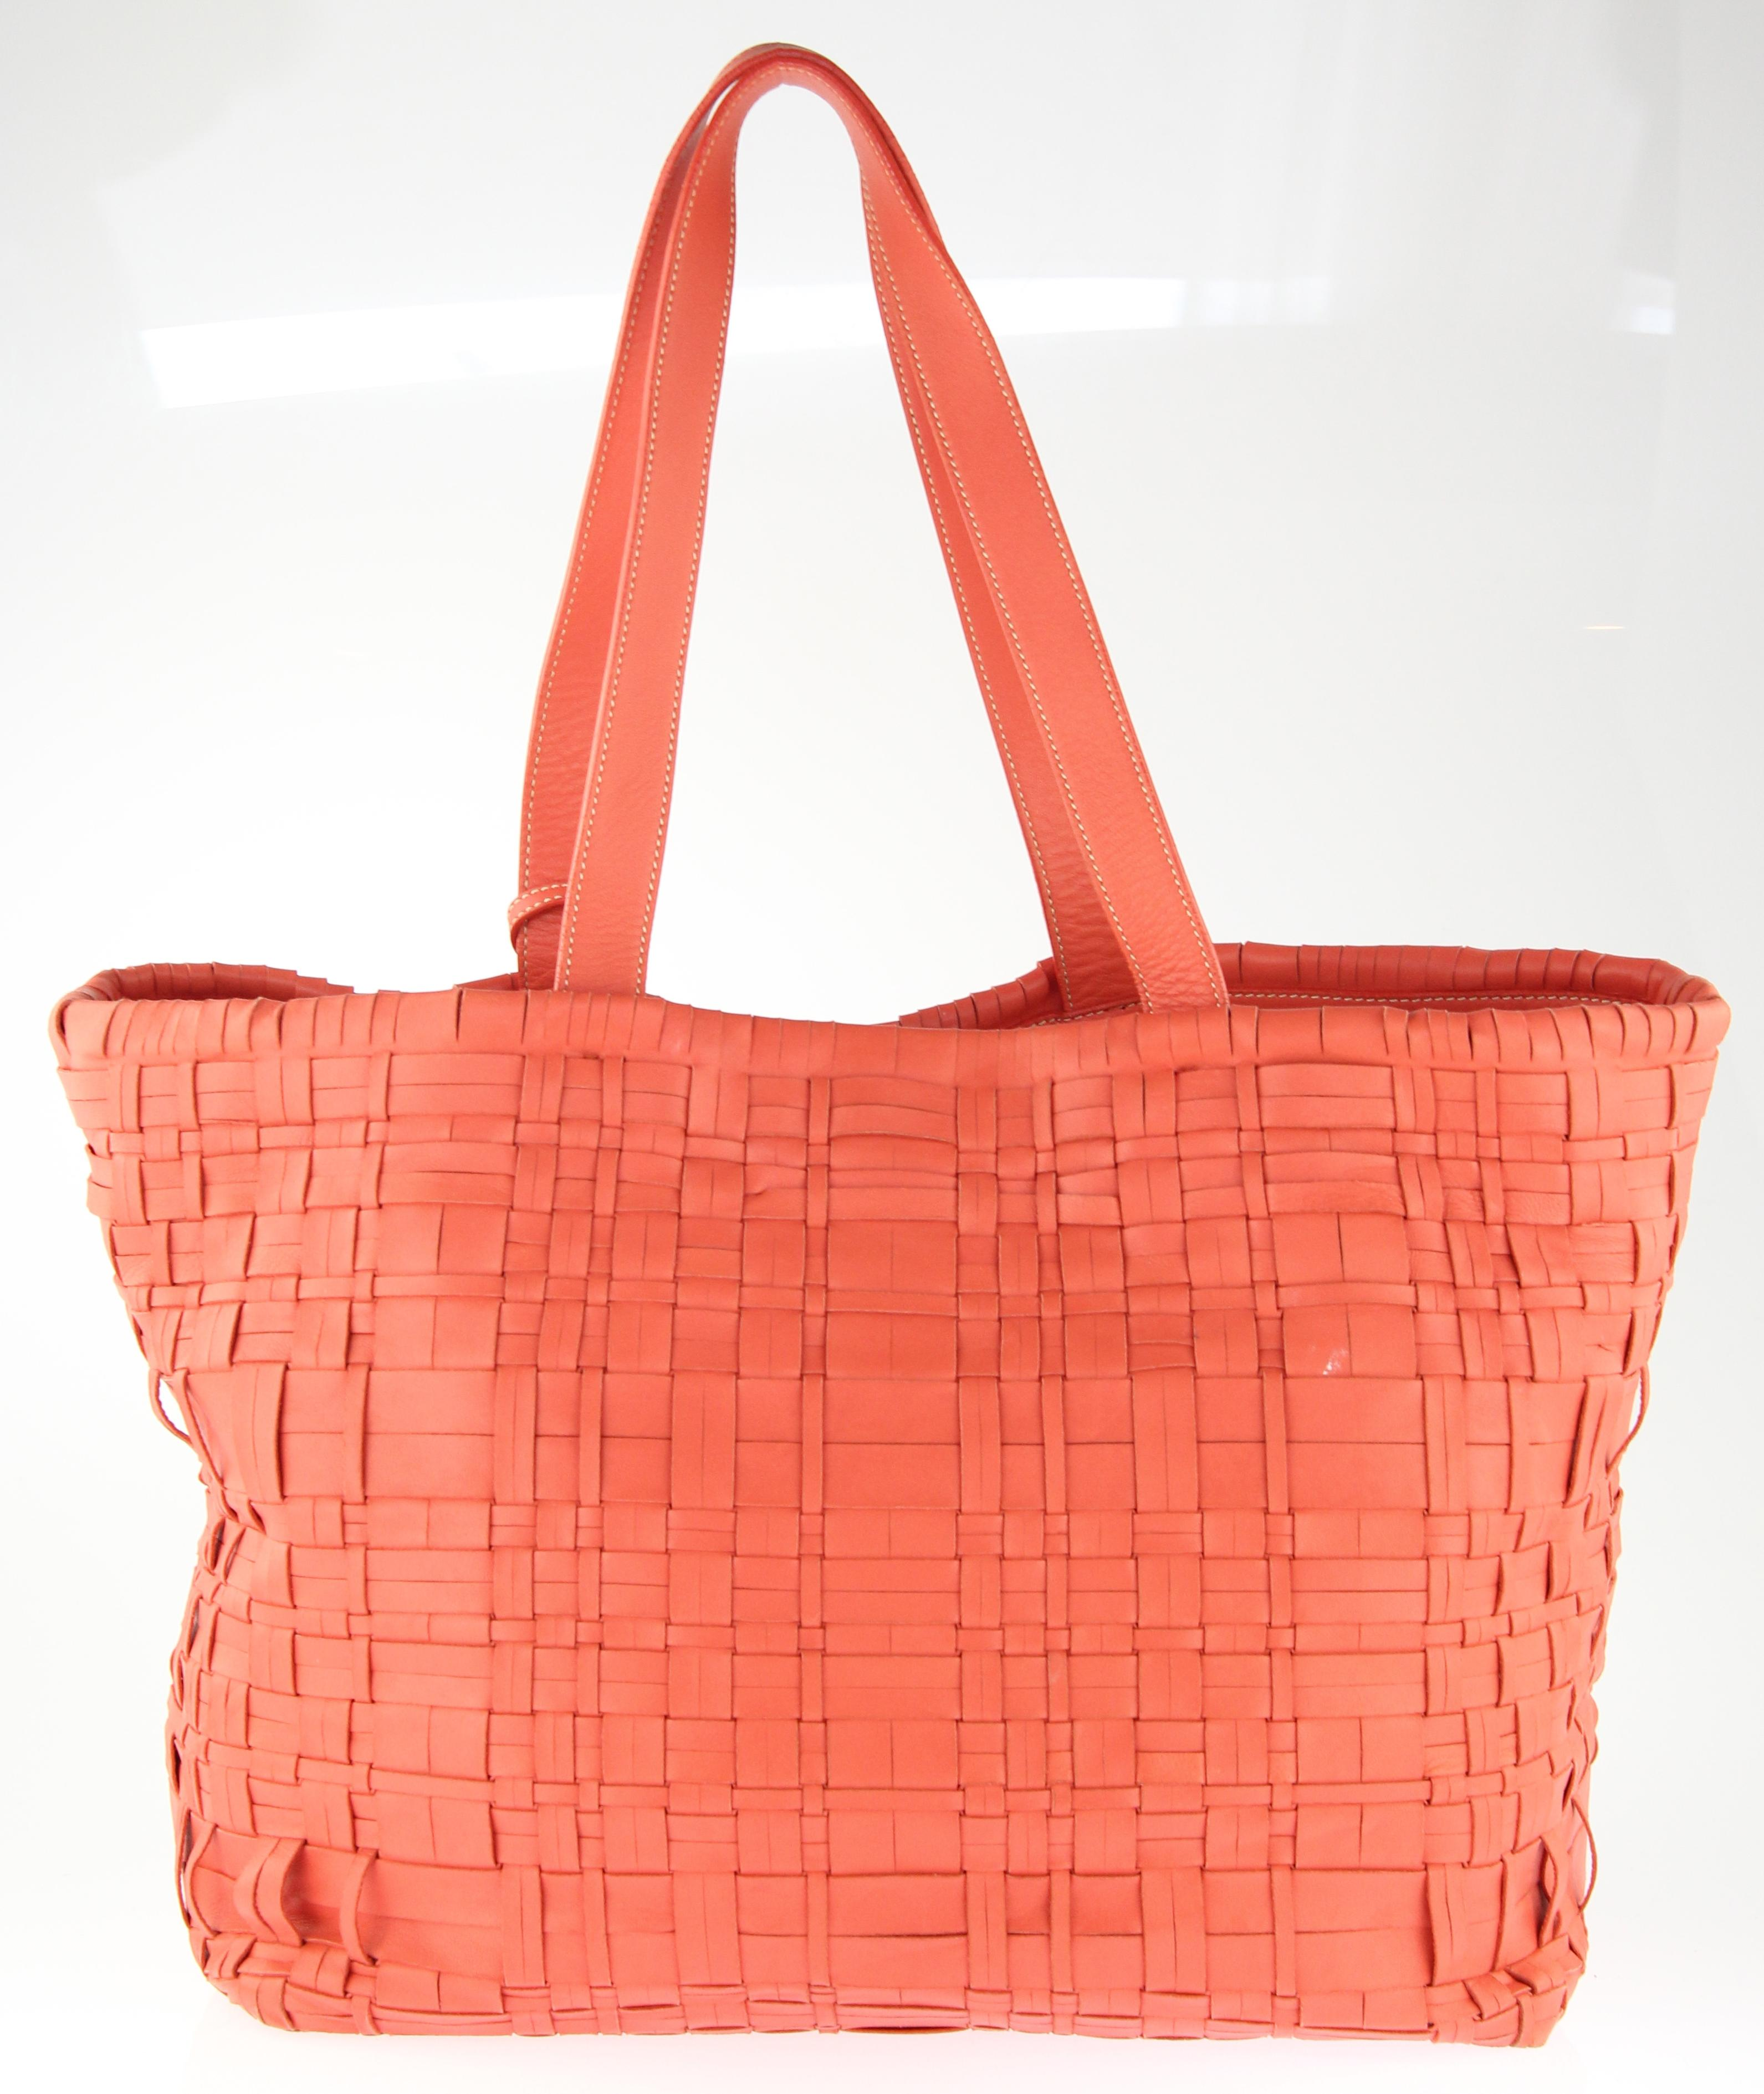 a10a80251e97e4 ... ireland prada east west woven coral leather tote tradesy ac3f5 c4f38